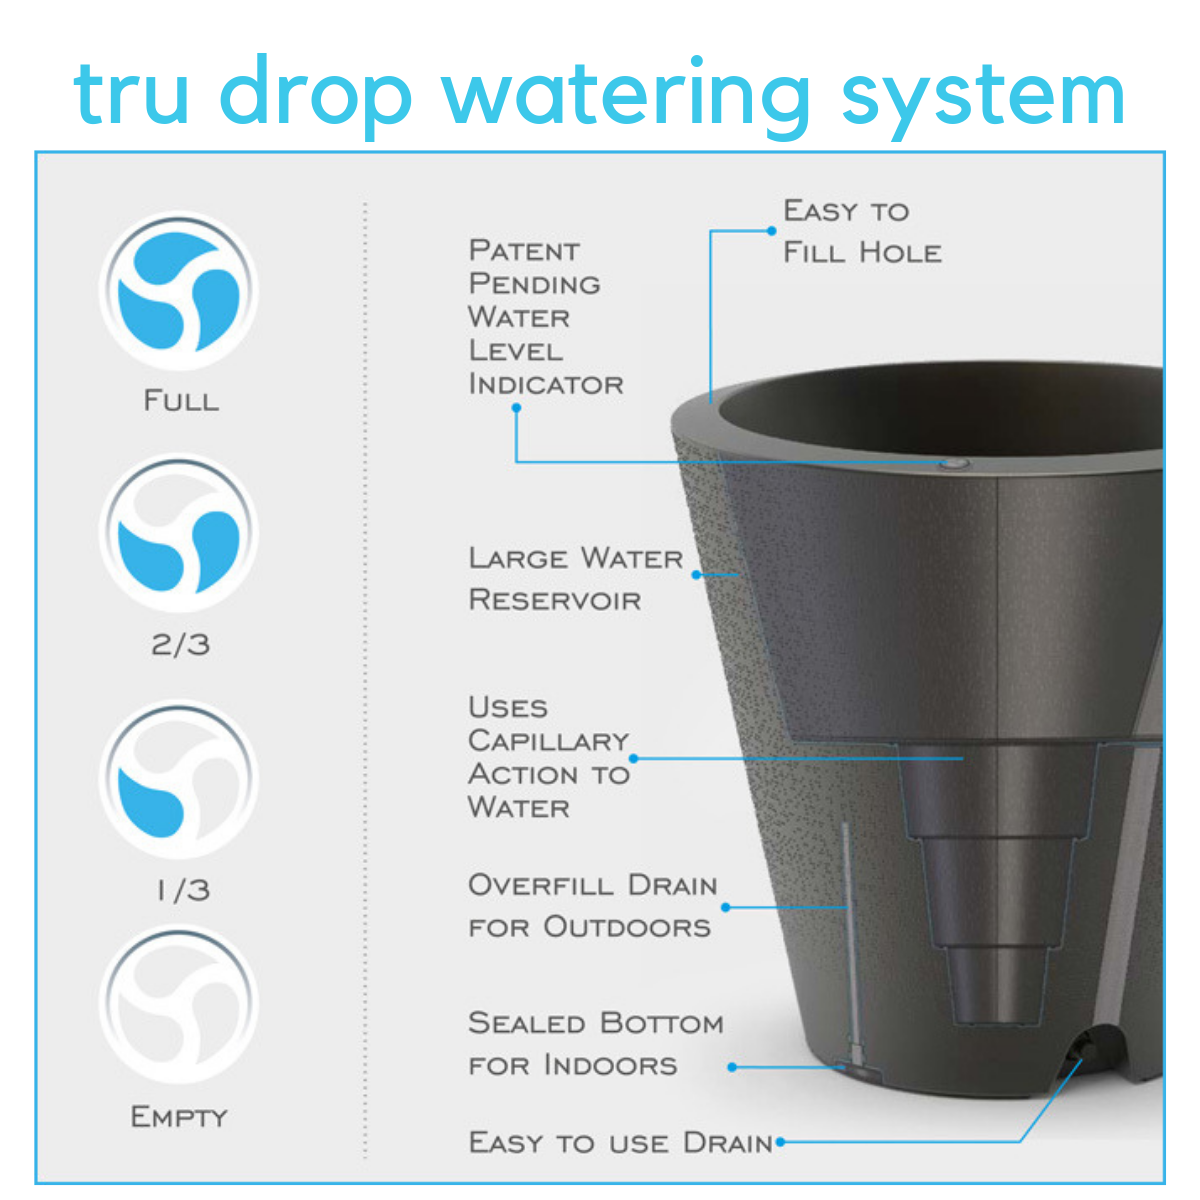 Each Nest Planter is Complete with the True Drop Watering System